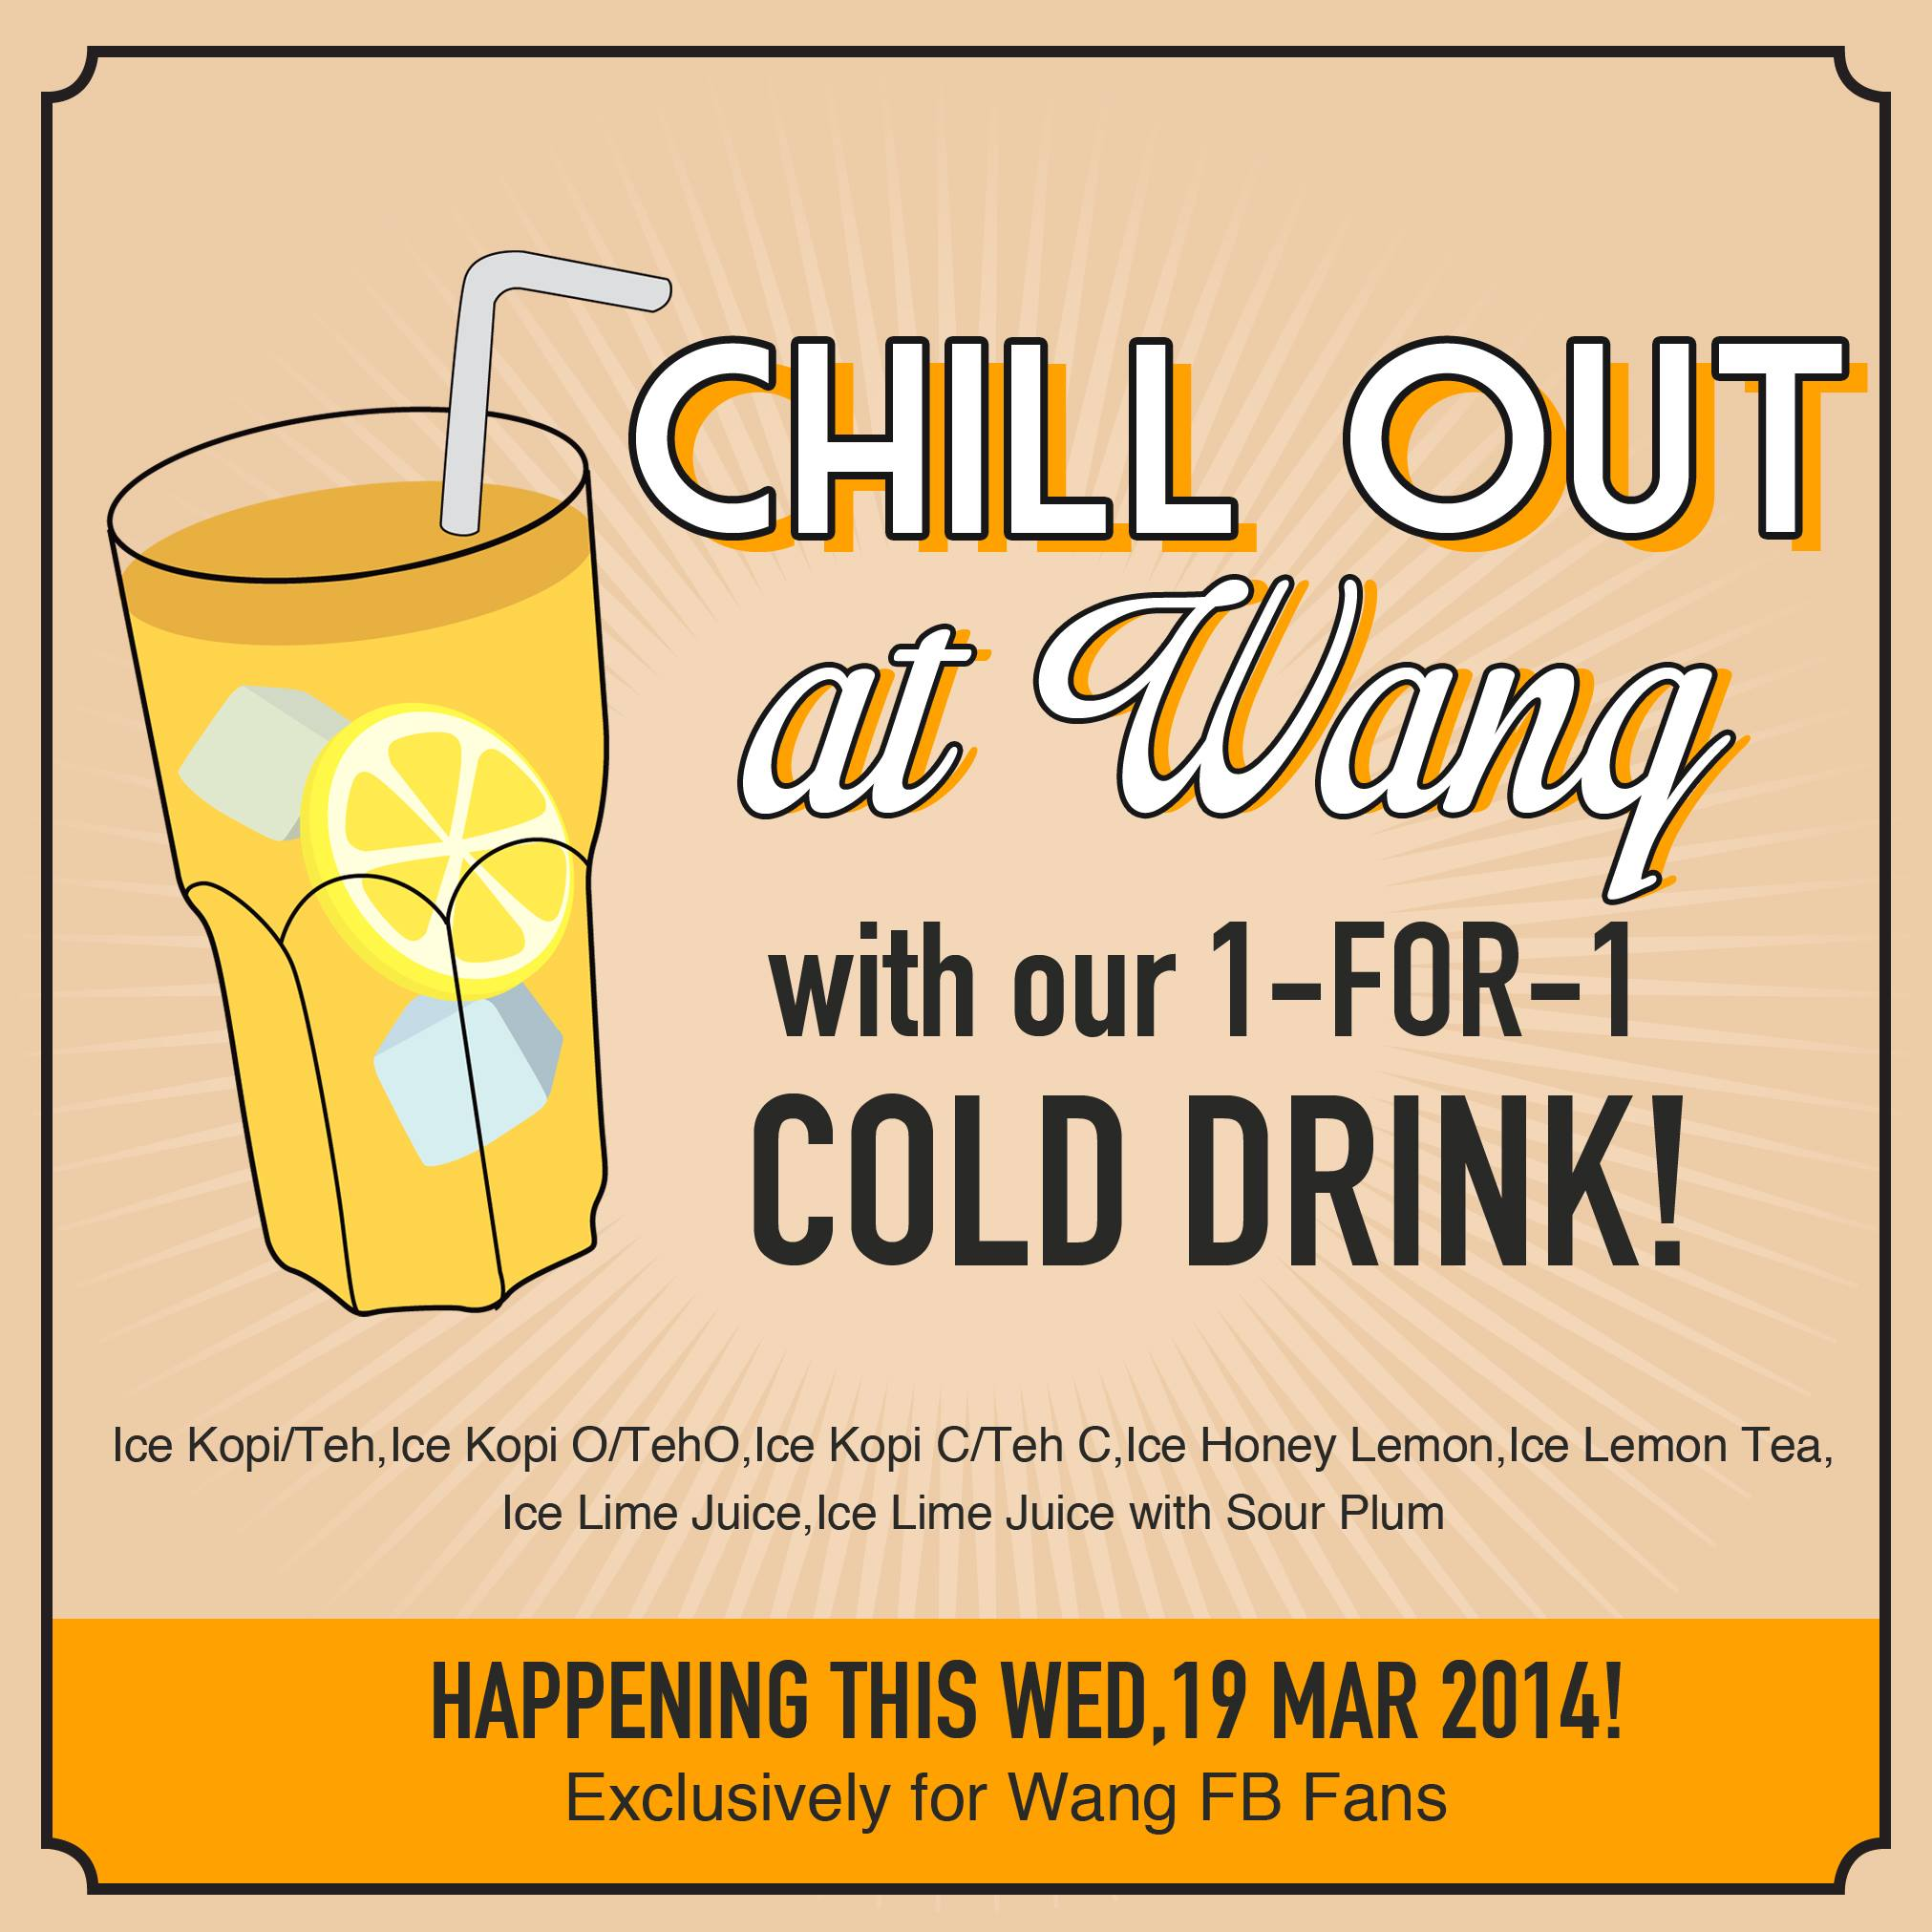 [BOGO] Wang Cafe 1-For-1 Offer For One Day, Wants You To Grab A Friend Along